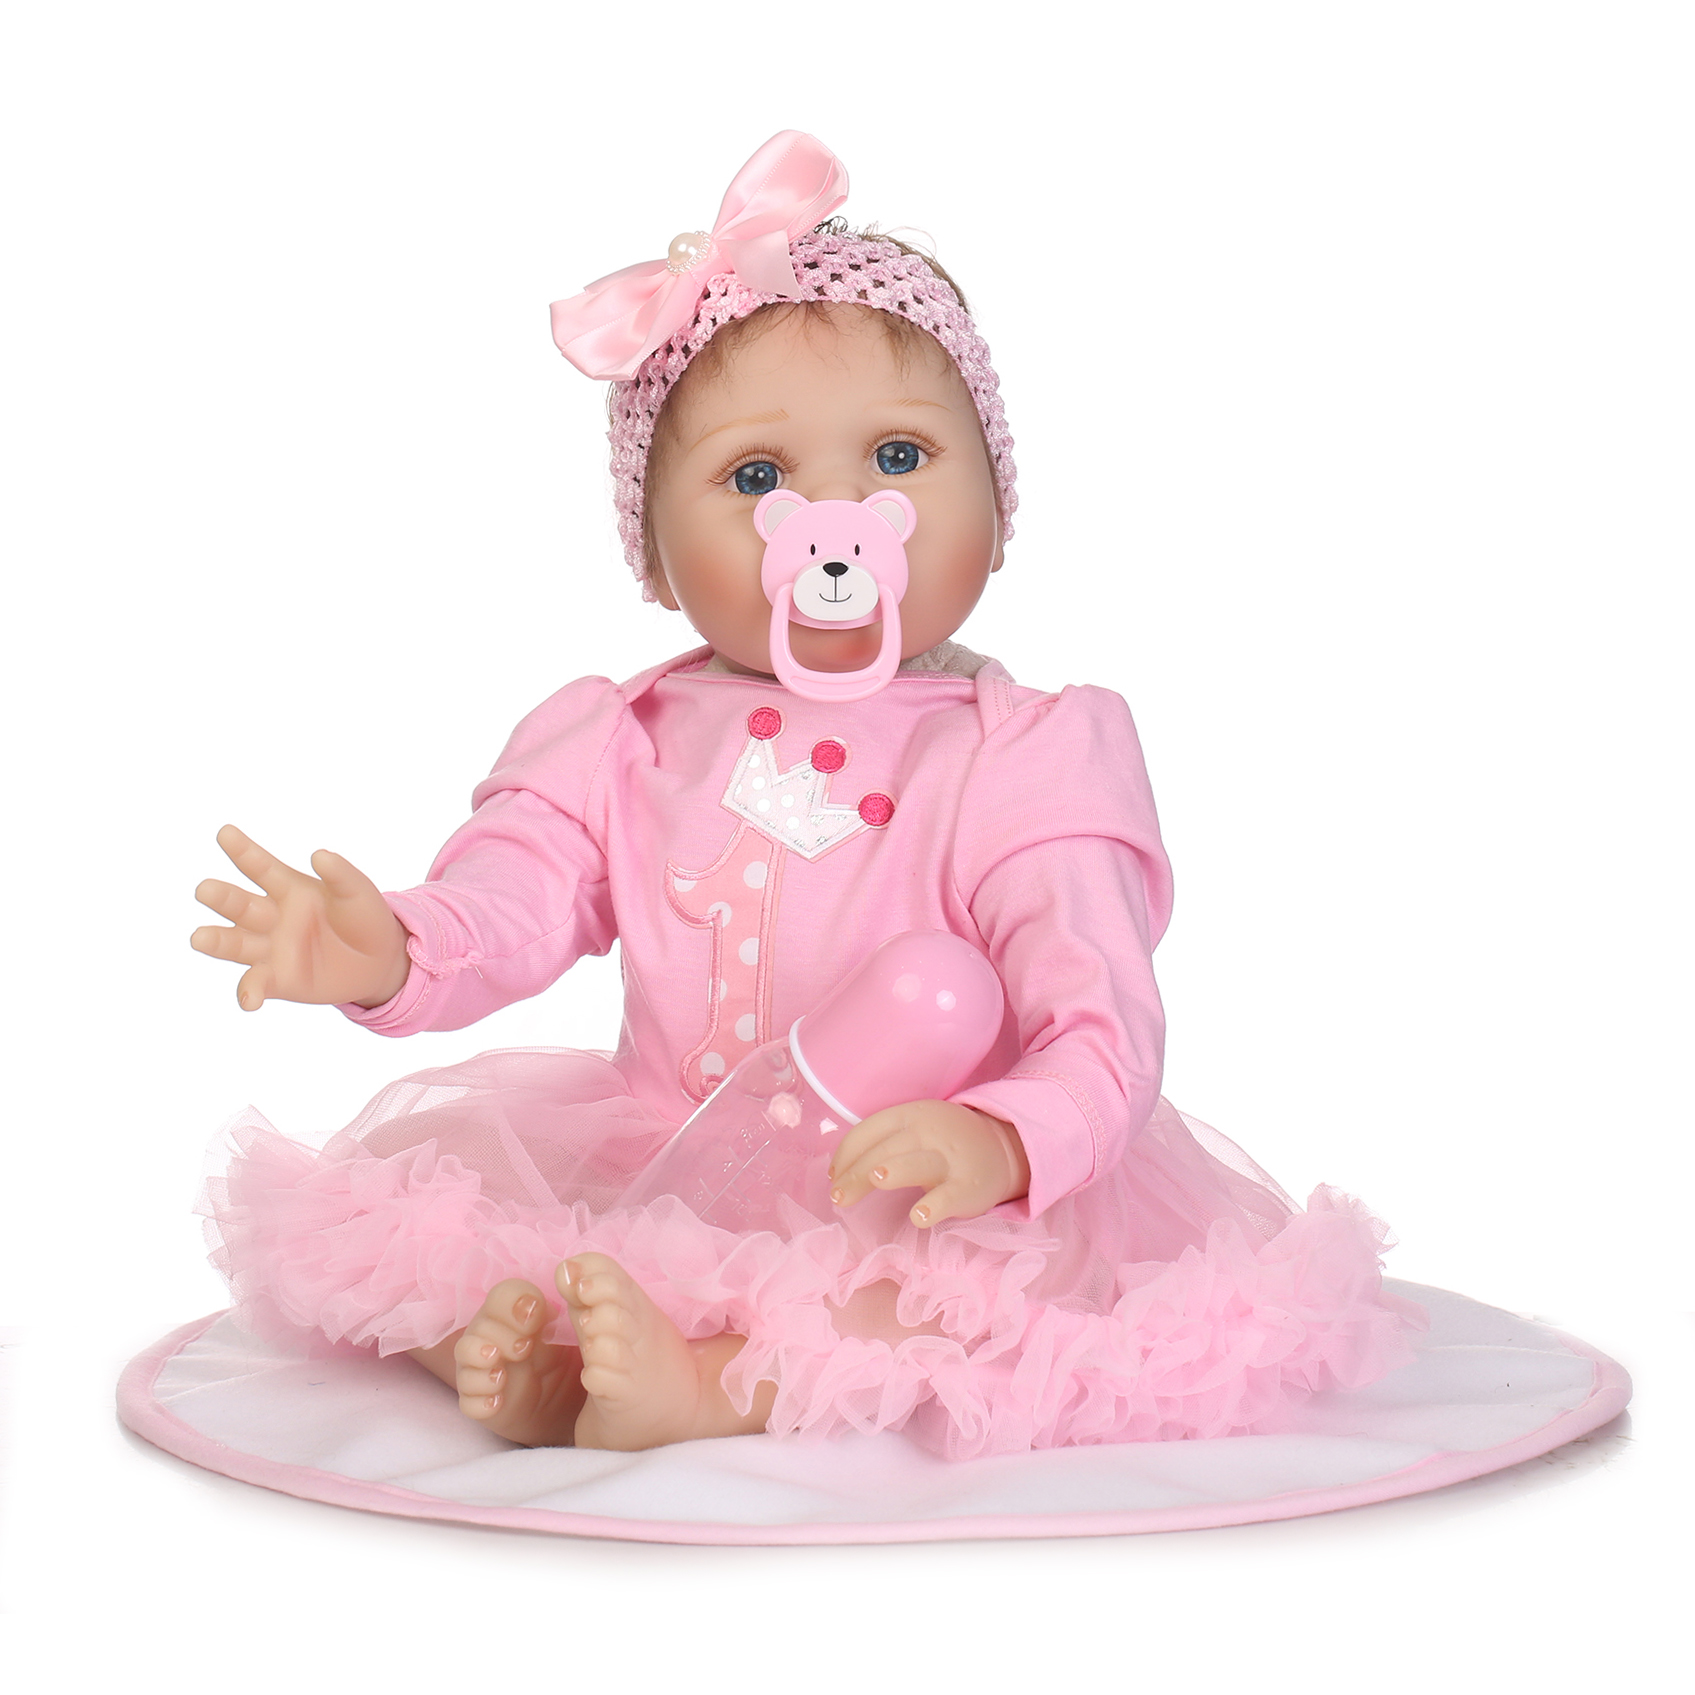 22 55cm Reborn Doll Soft Real Gentle Touch Realistic Rooted Mohair Handmade Doll Toys for Girls XMAS Birthday New Year Gift new fashion design reborn toddler doll rooted hair soft silicone vinyl real gentle touch 28inches fashion gift for birthday